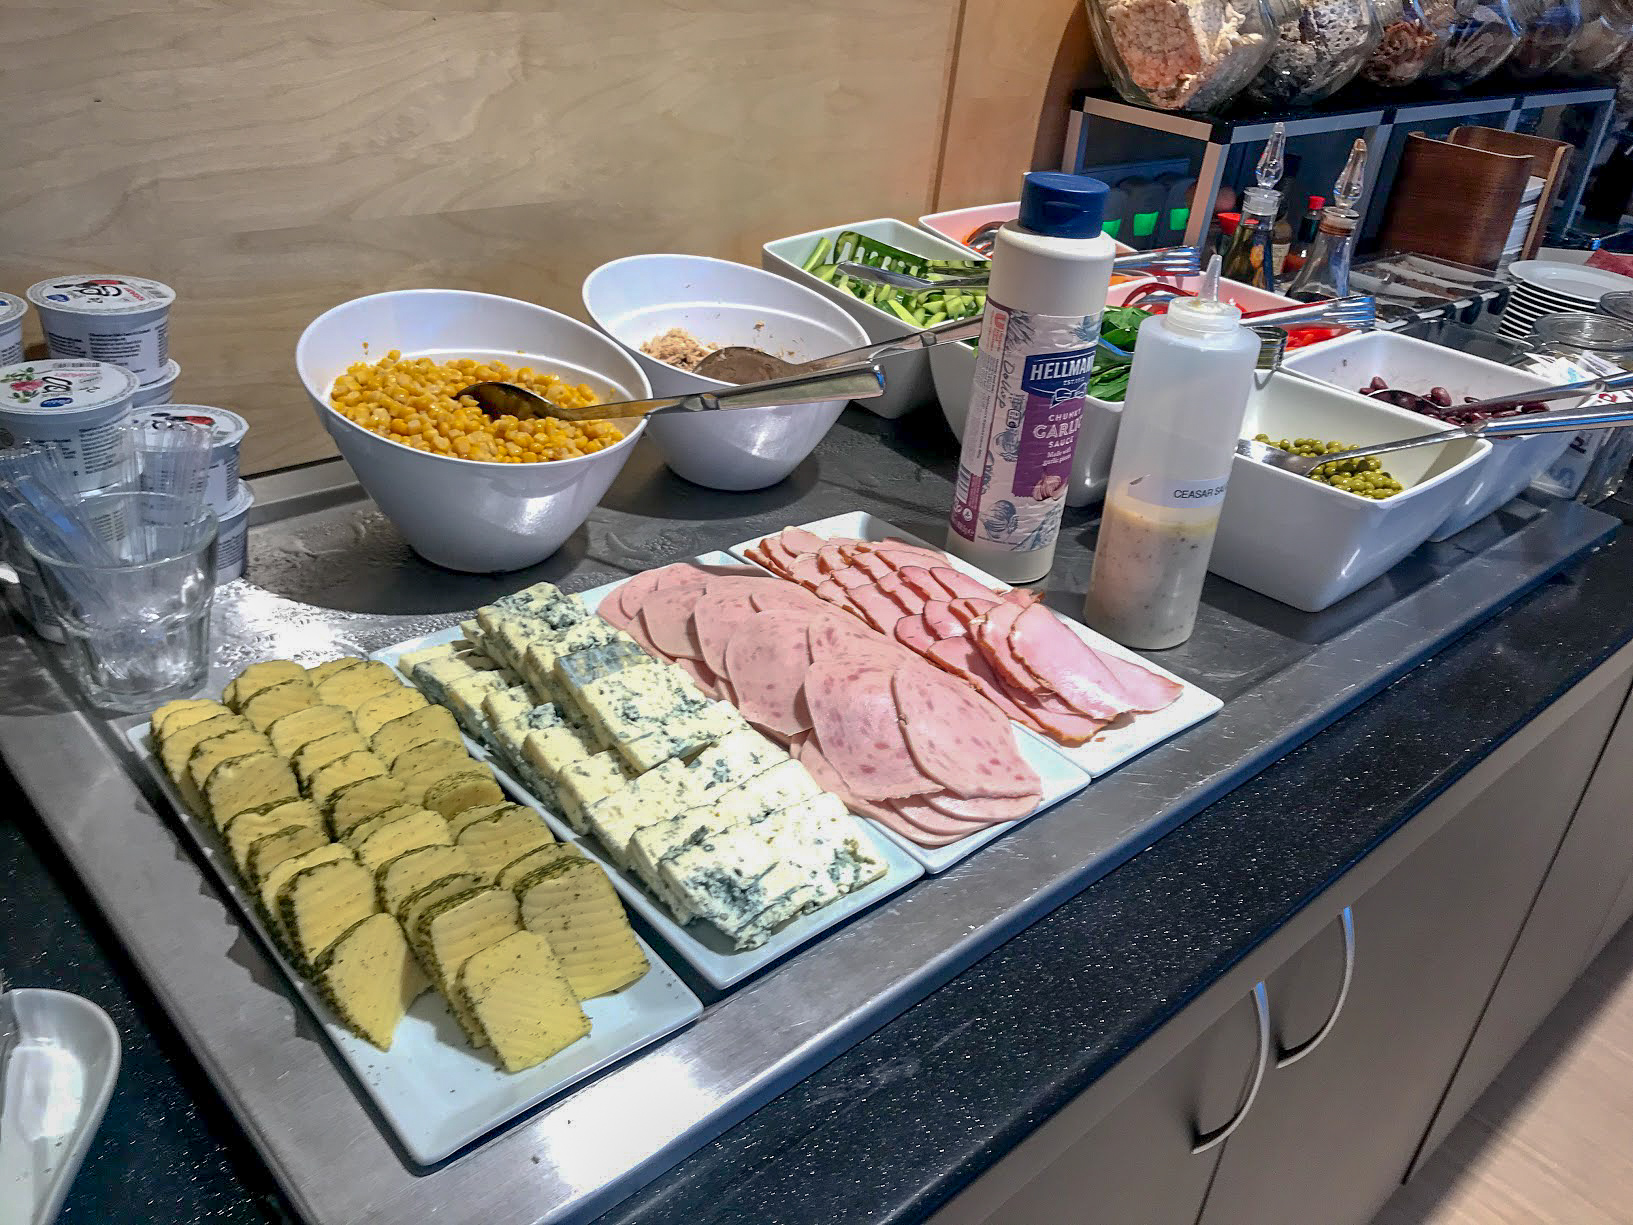 Cold foods in the Primeclass Business Lounge at Riga International Airport